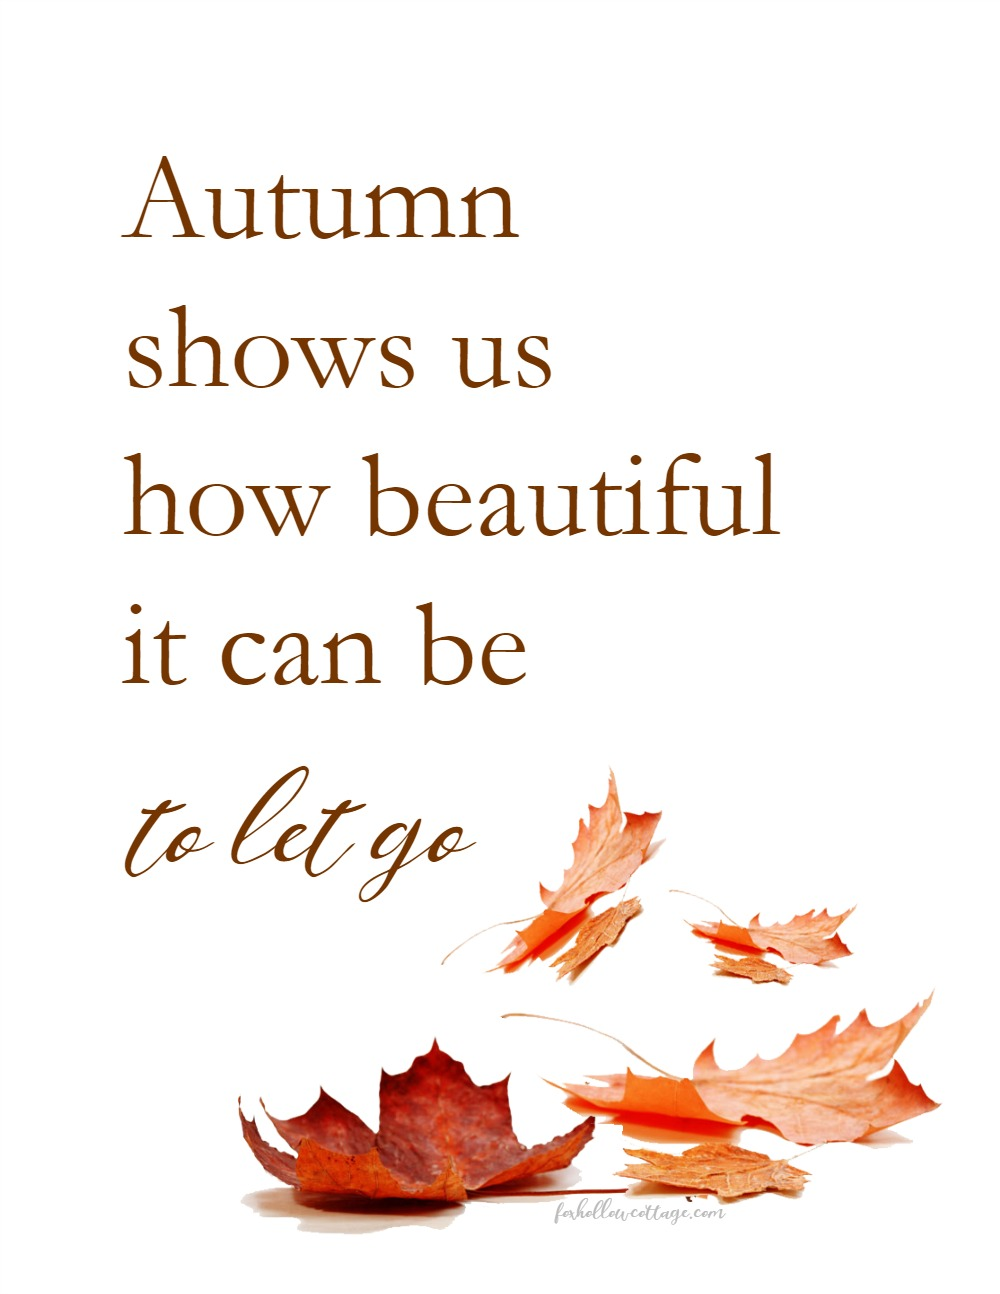 Autumn shows us how beautiful it can be to let go